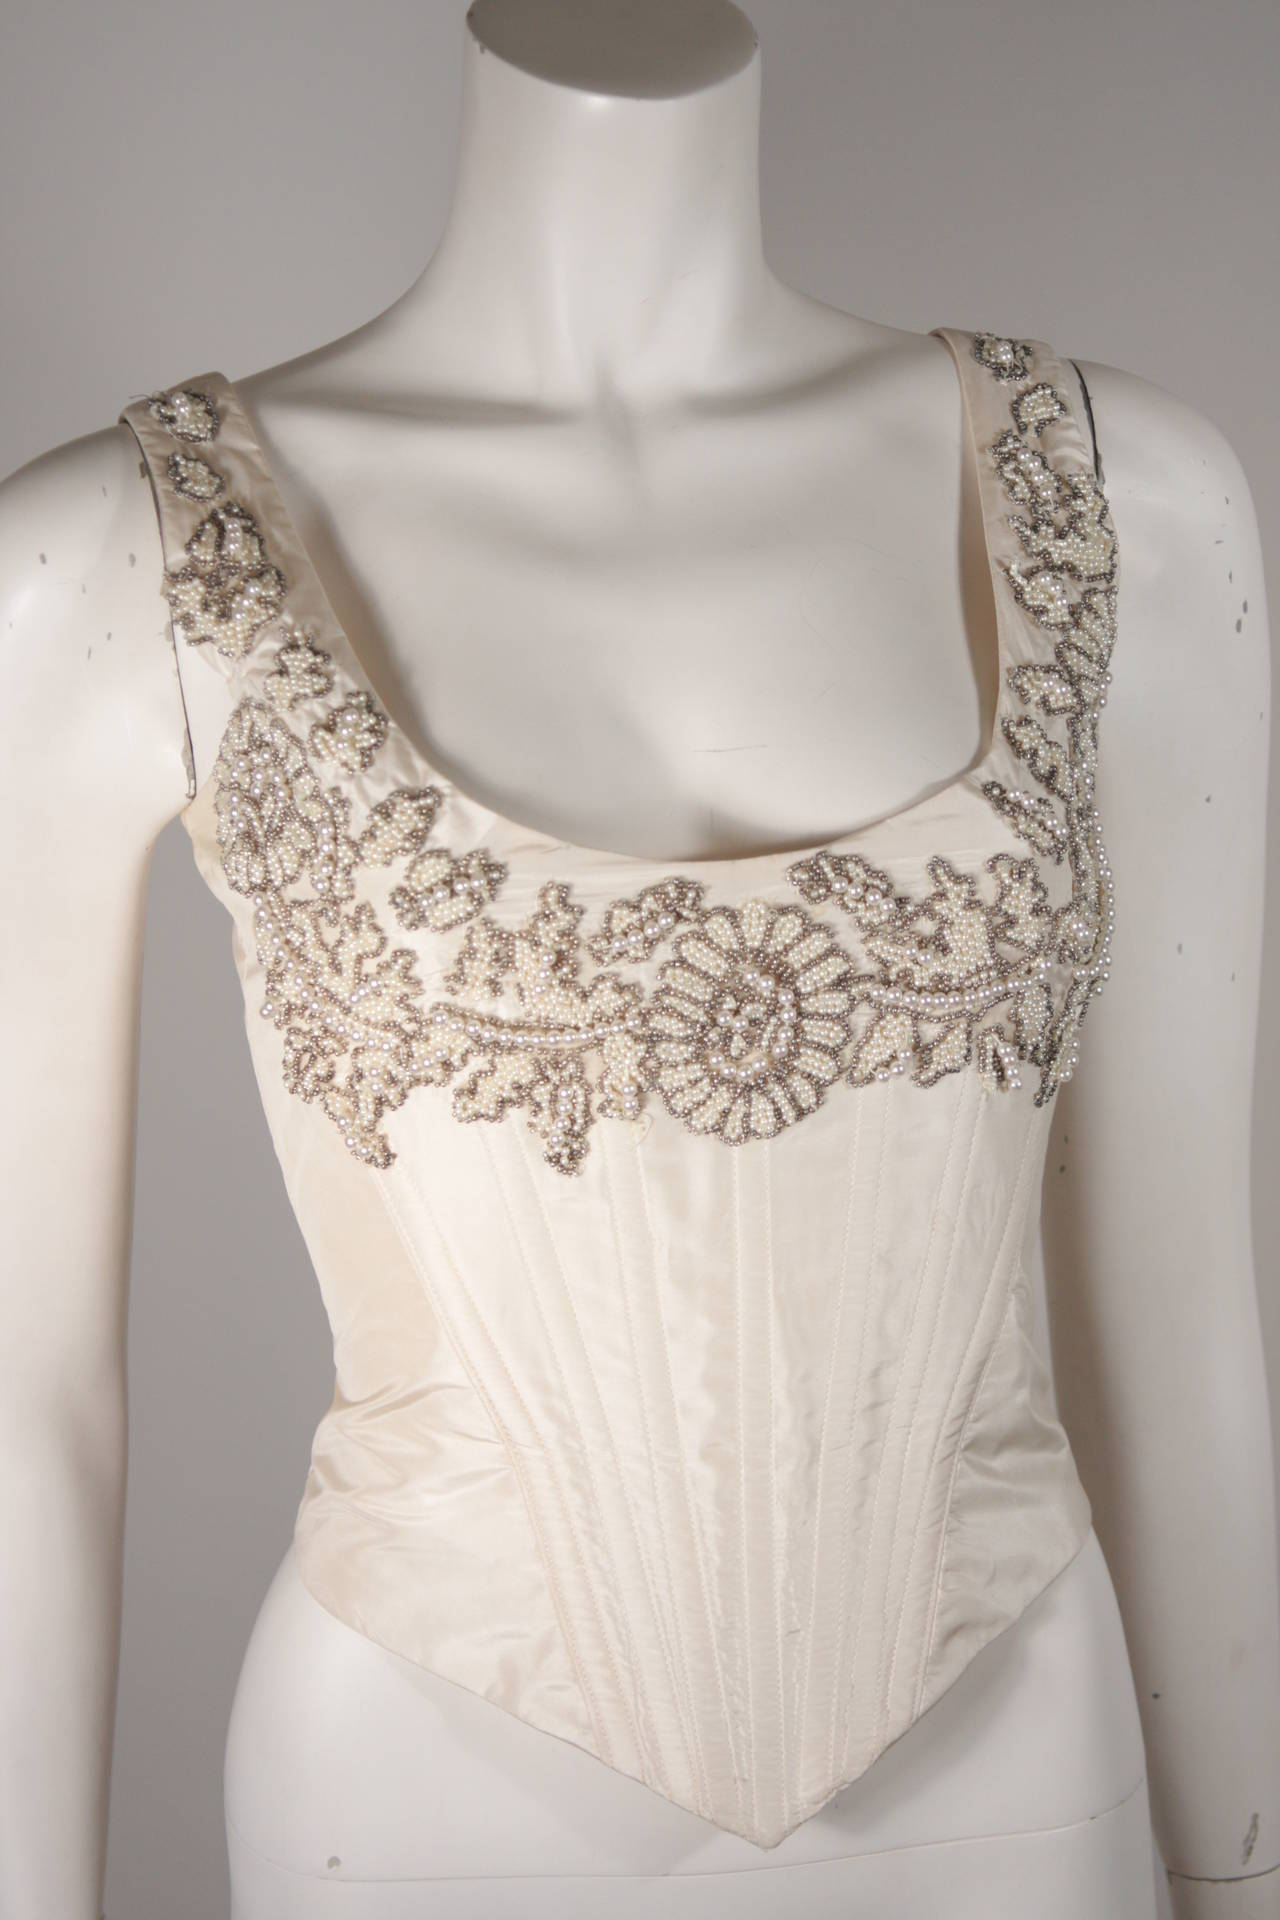 This Eavis & Brown London bustier is composed of a cream silk which is embellished with white and silver hued beading. Features a lace back. Made in London. 